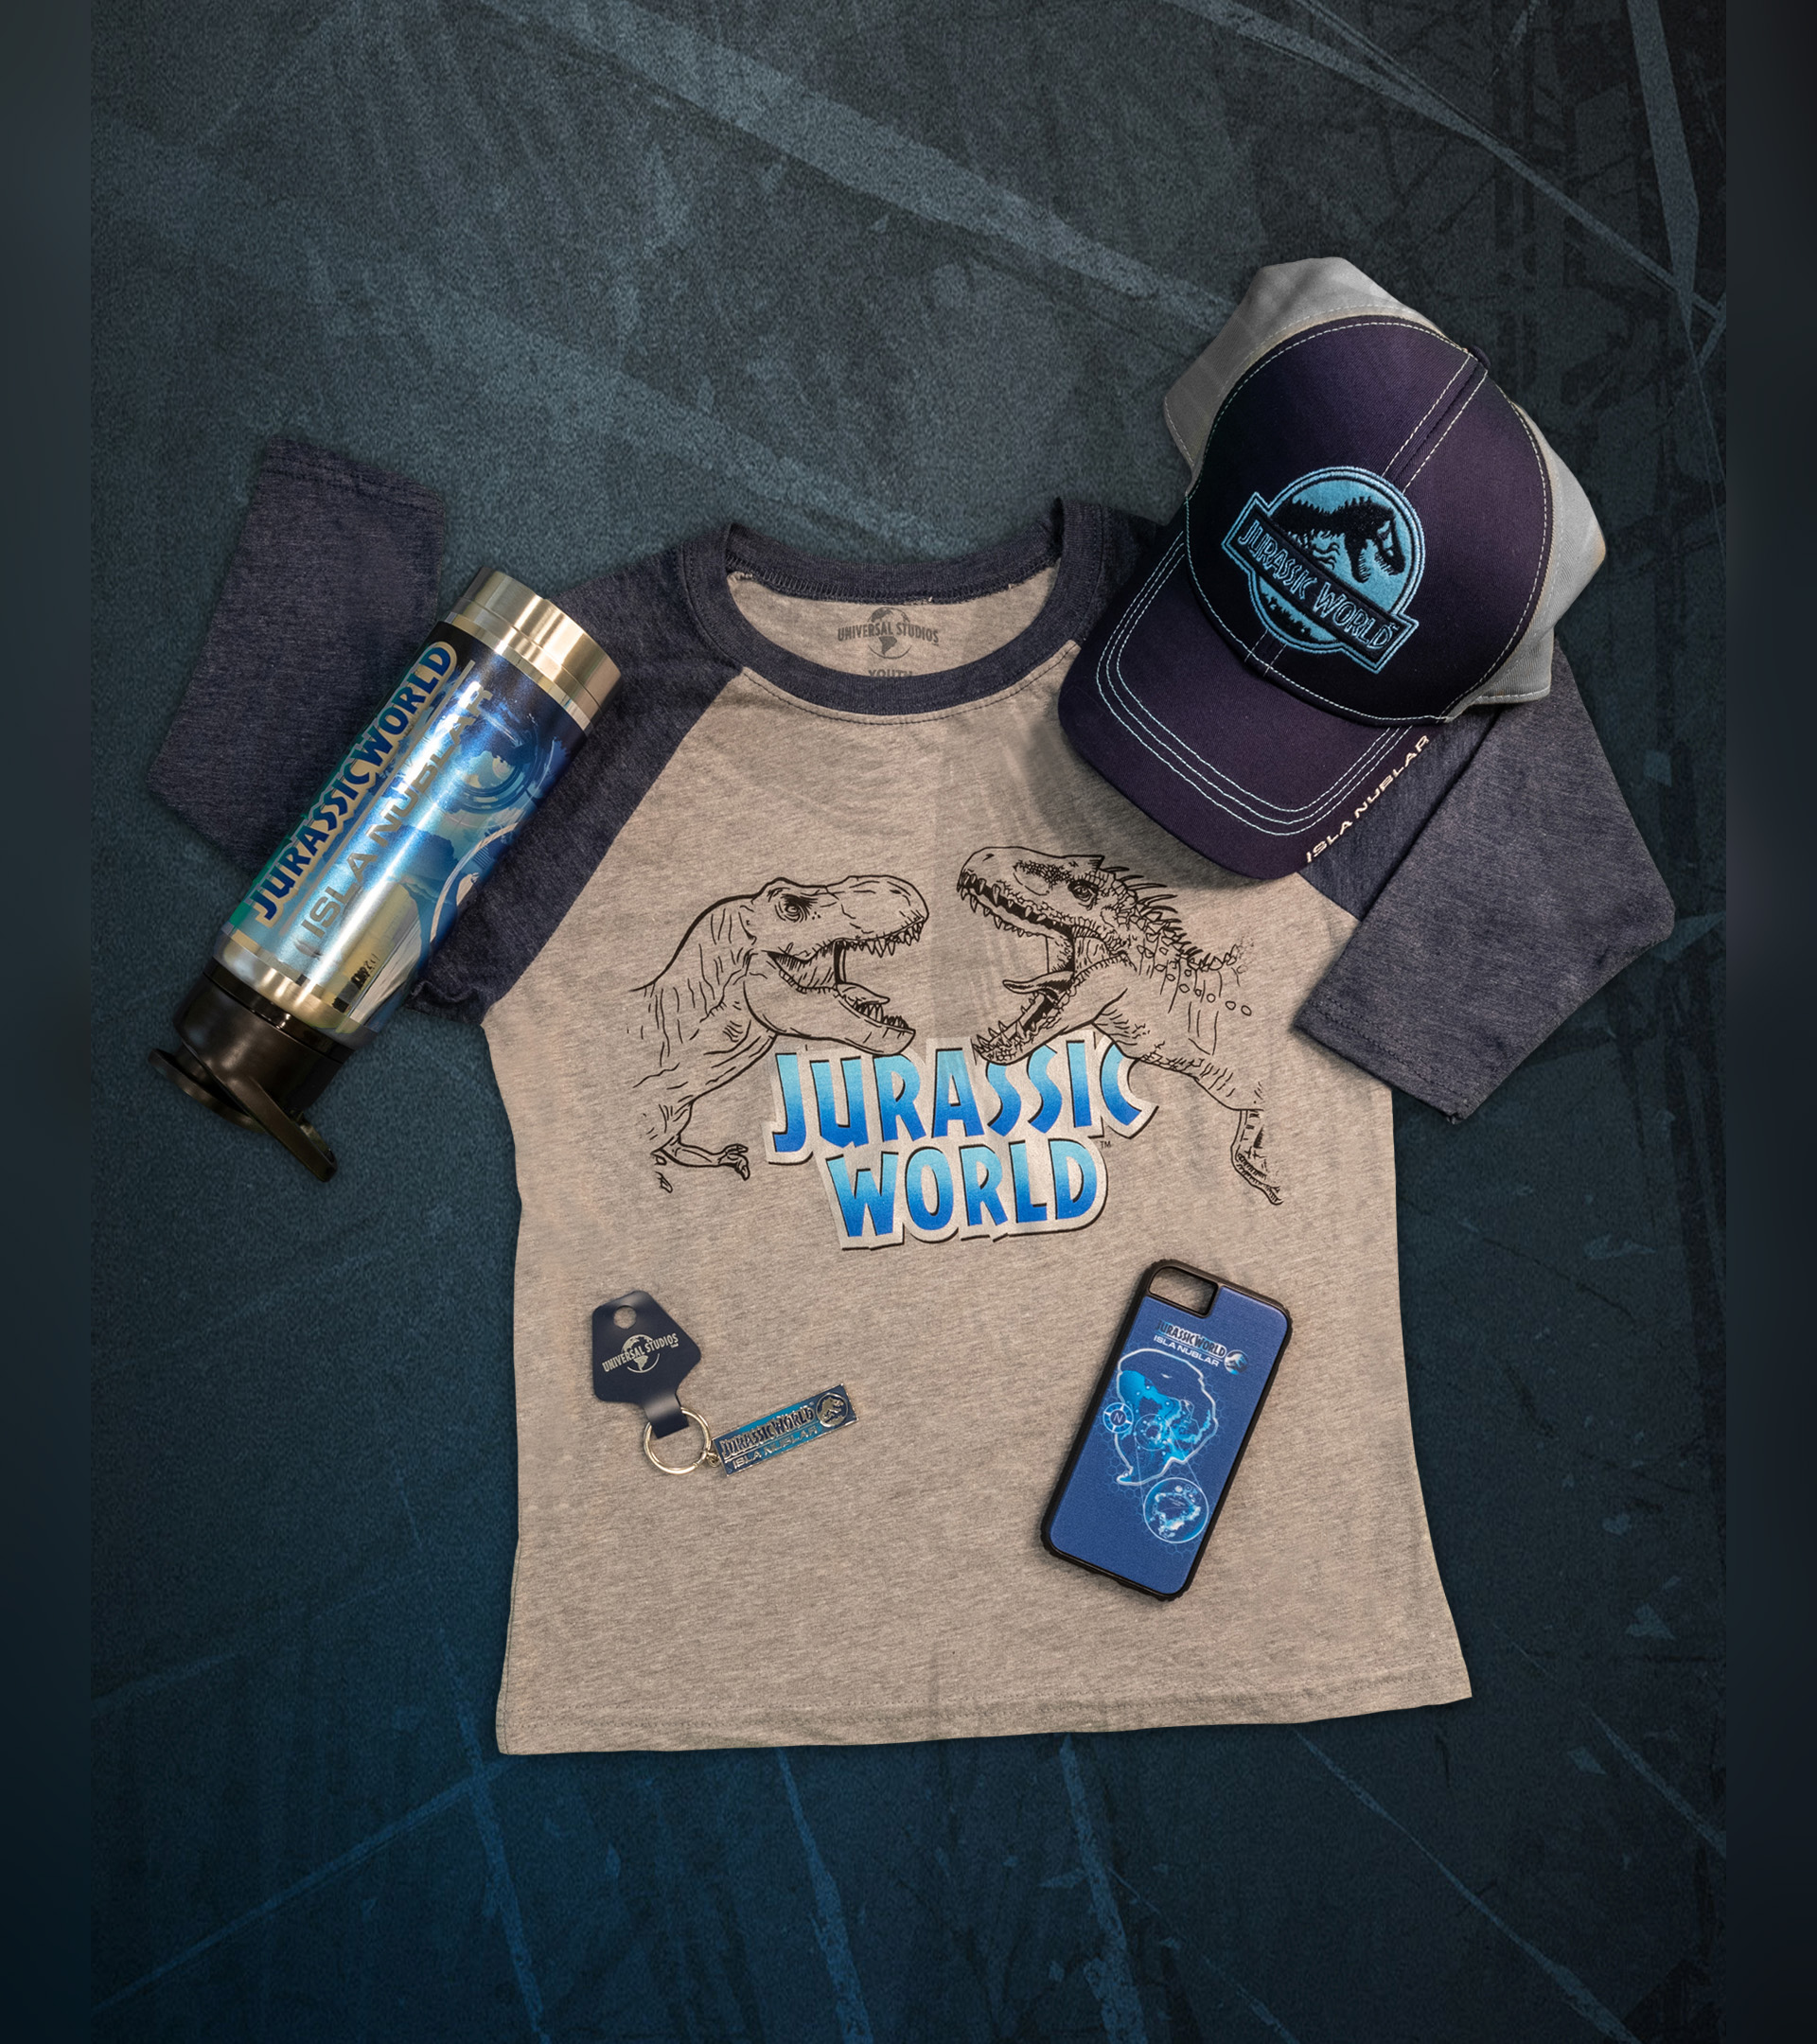 There will be plenty of merchandise available for Jurassic World: The Ride! (Photo courtesy of Universal Studios Hollywood.)